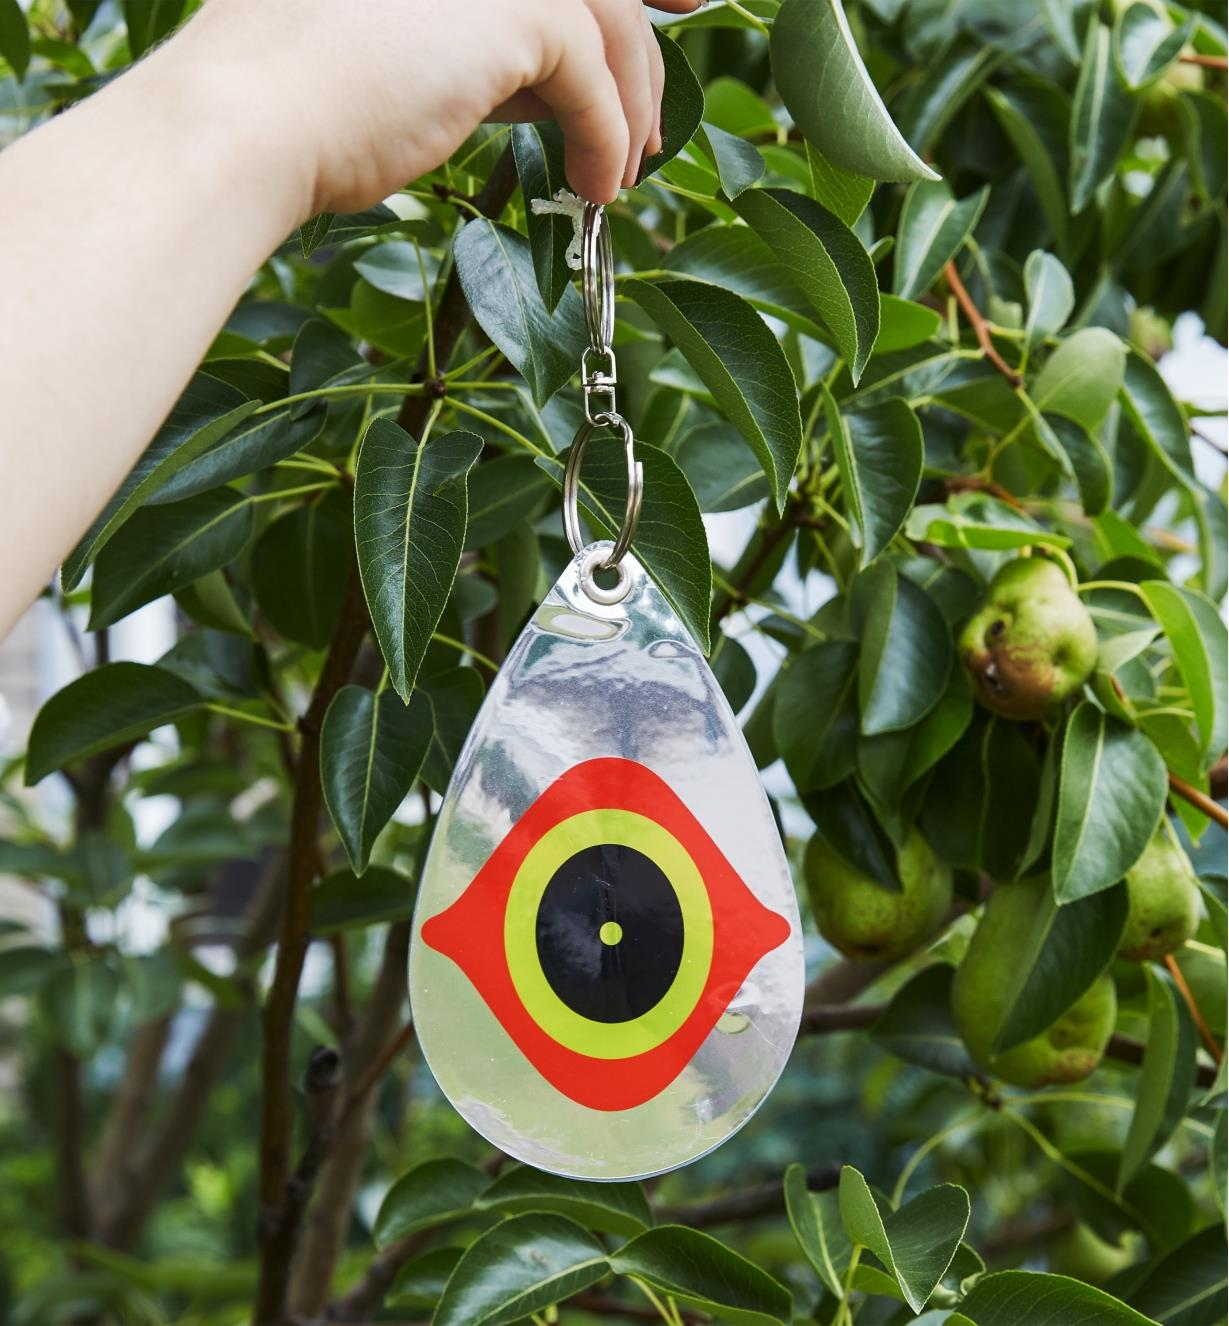 Hanging a Scare Eye Bird Deterrent in an apple tree